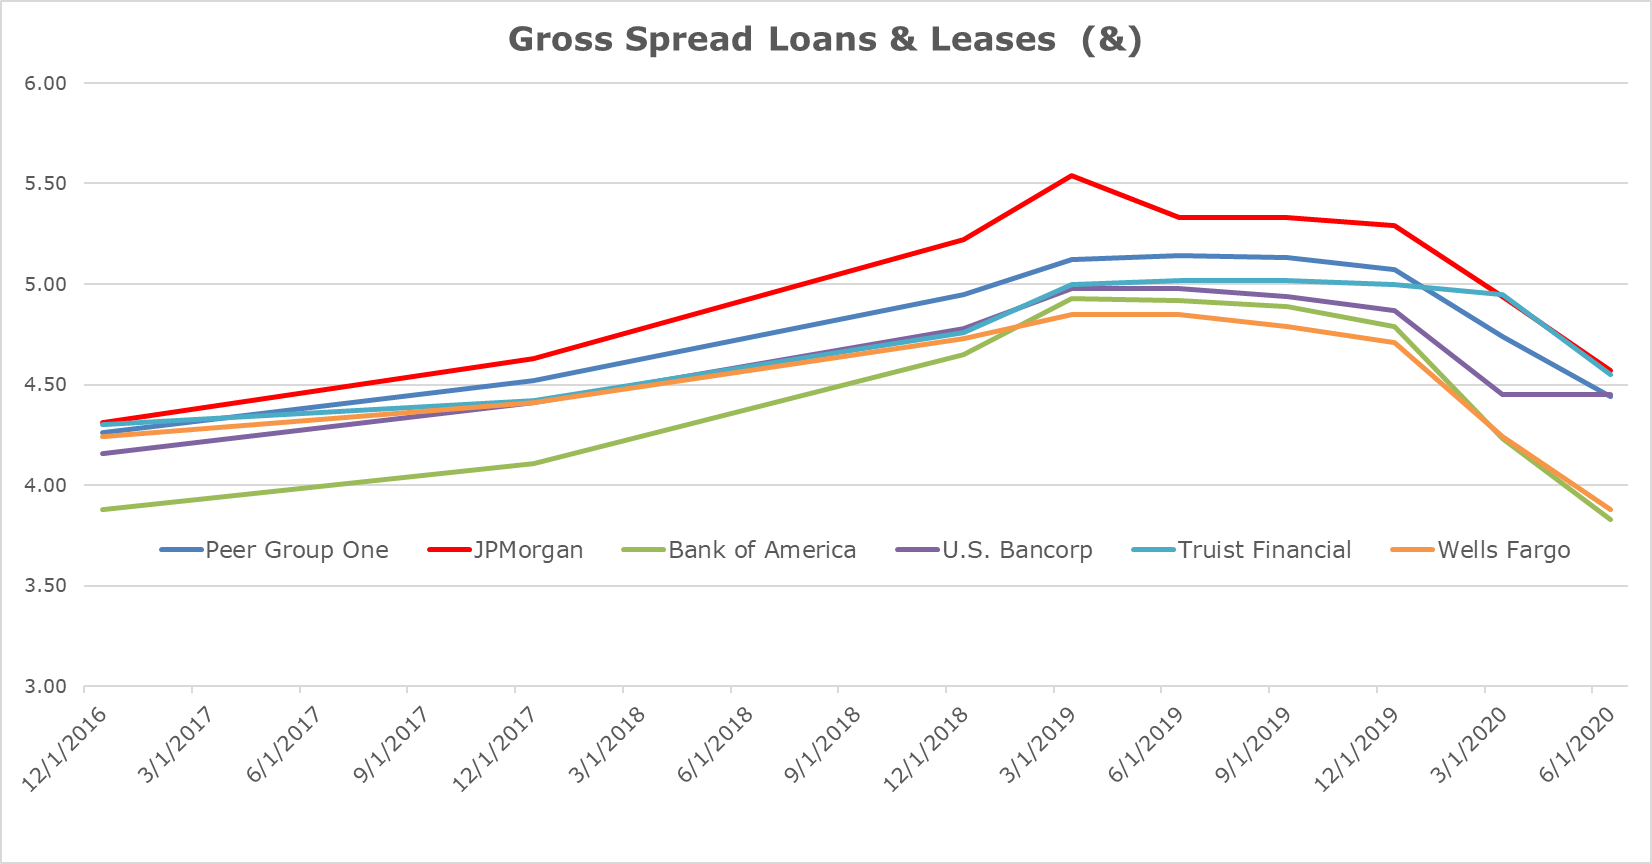 Q&A with Christopher Whalen - Gross Spread Loans & Leases